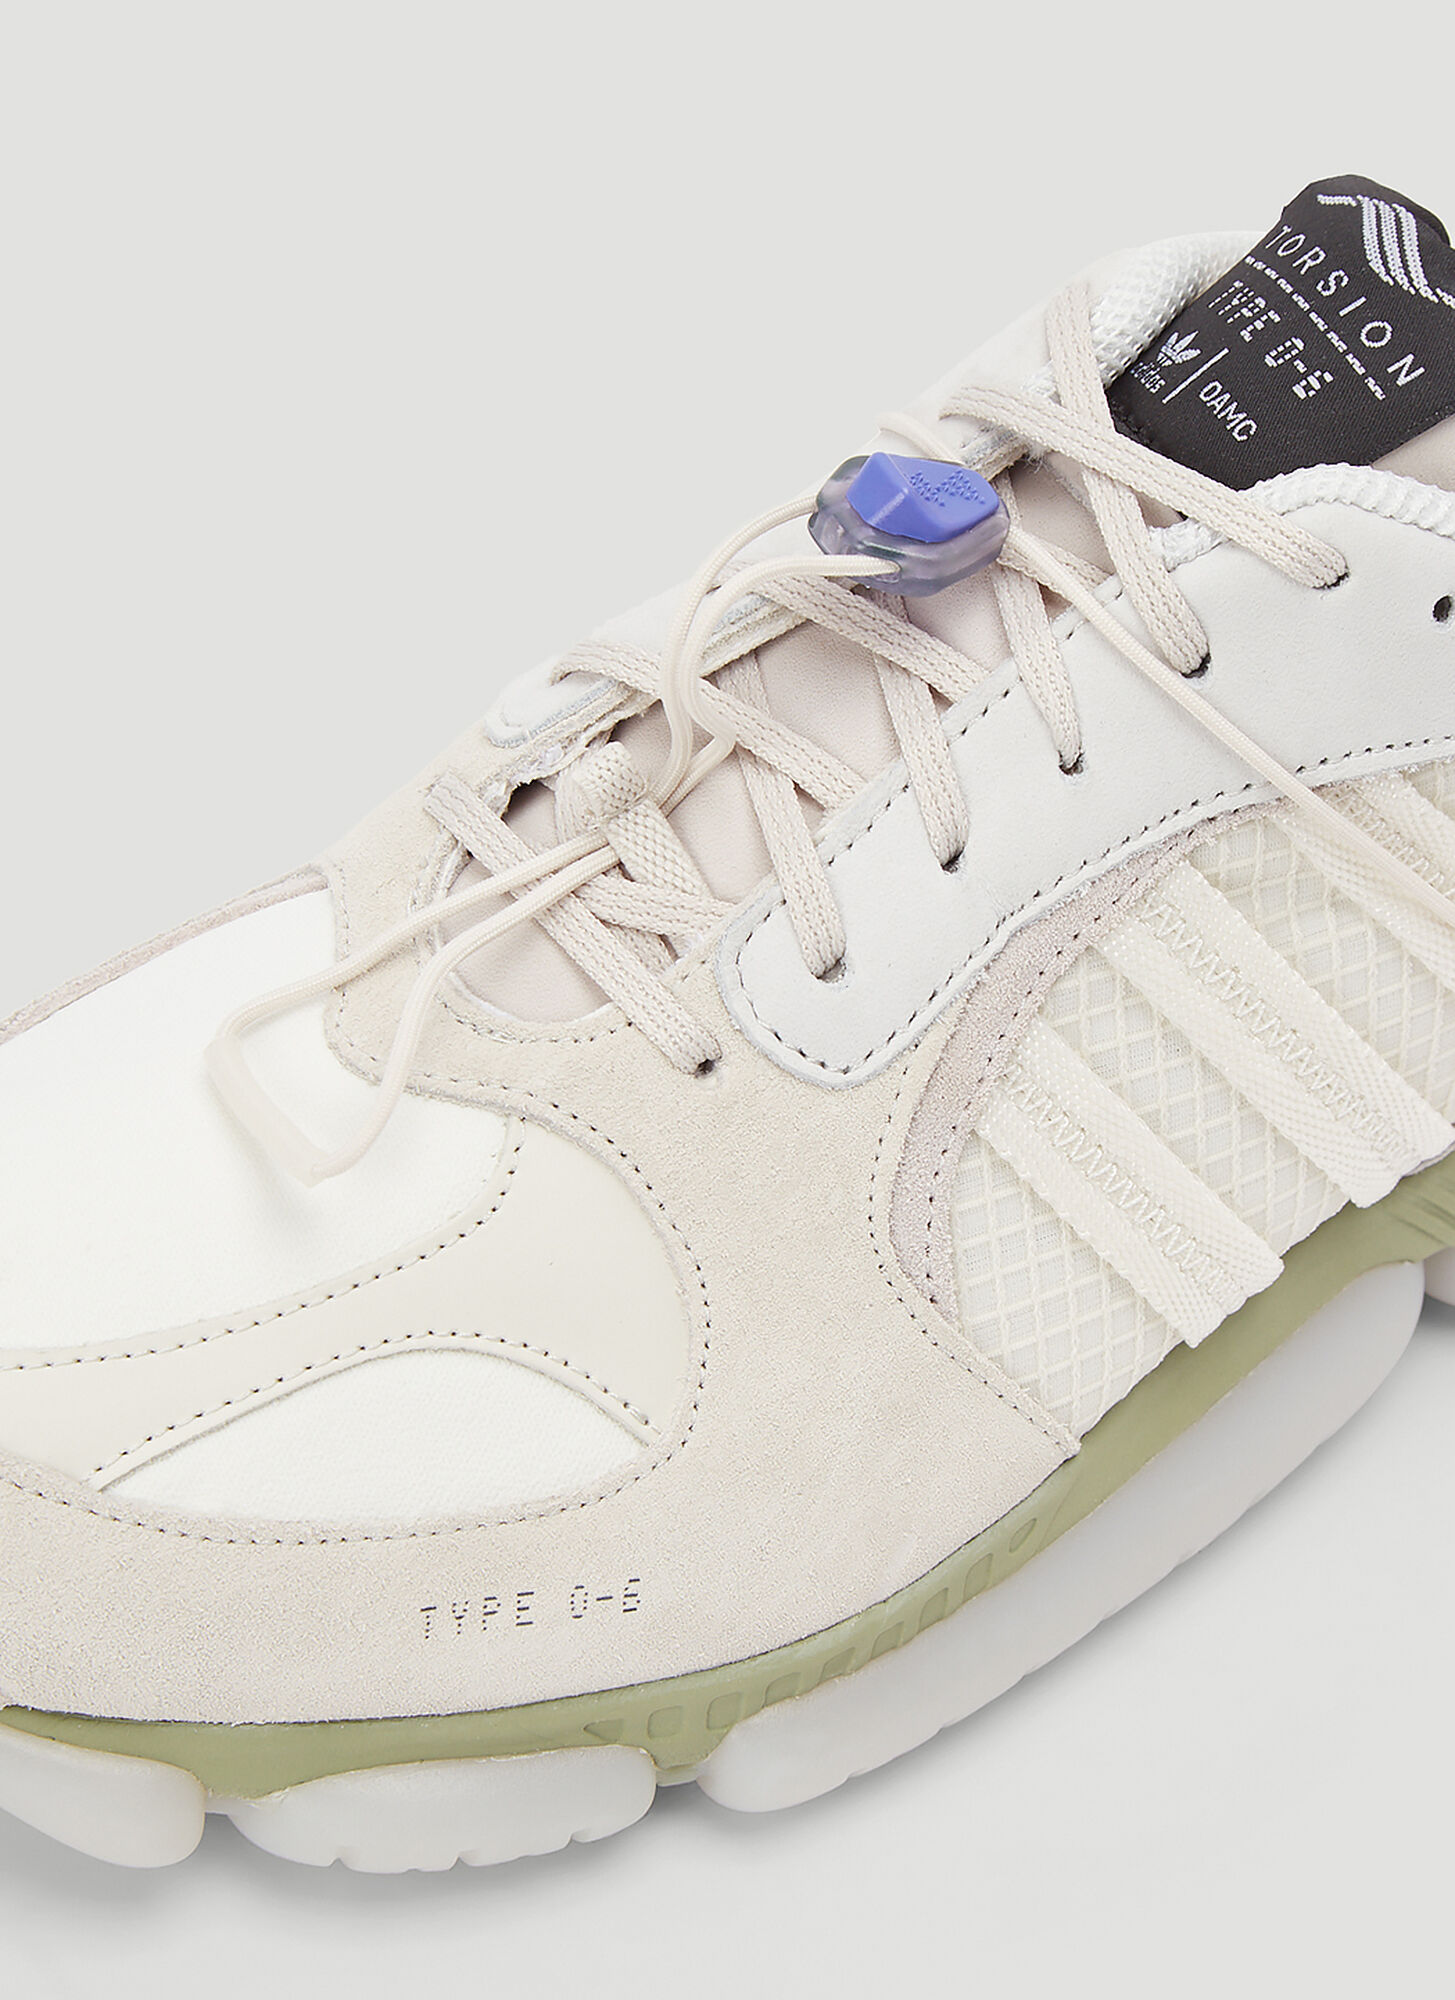 adidas by OAMC Type O-6 Sneakers in Grey